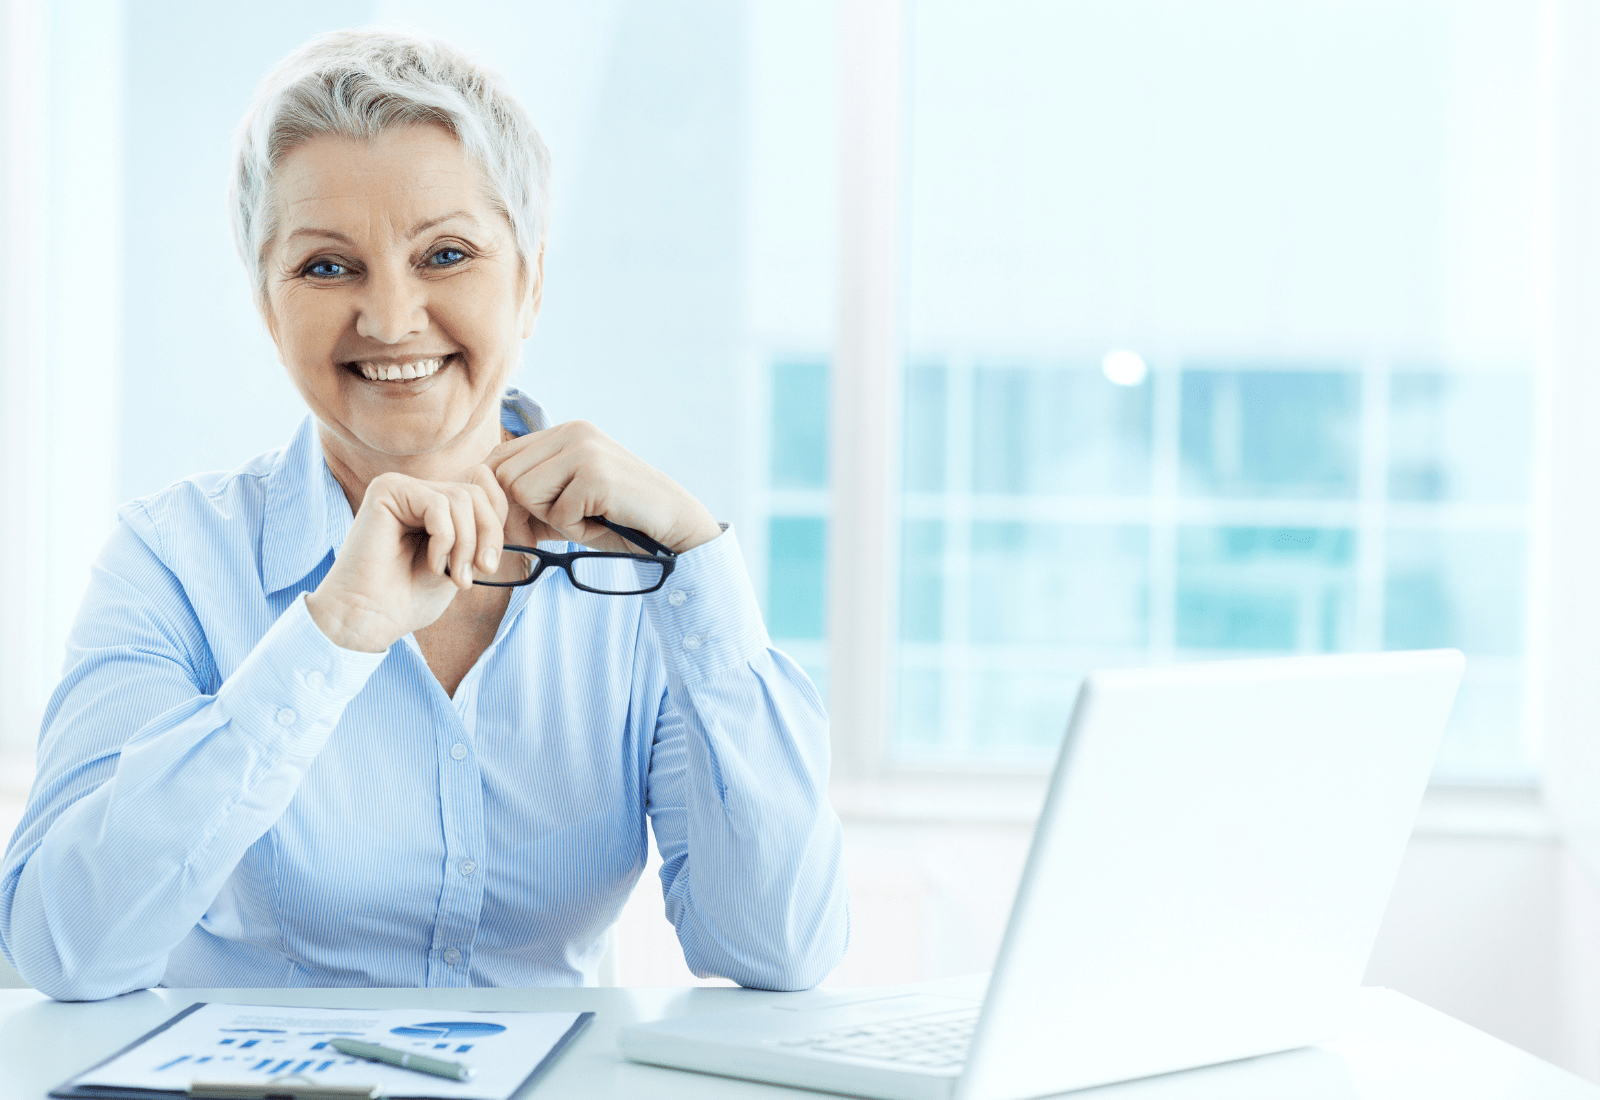 A 'How-To' Guide to Goal Setting for Individuals 50+